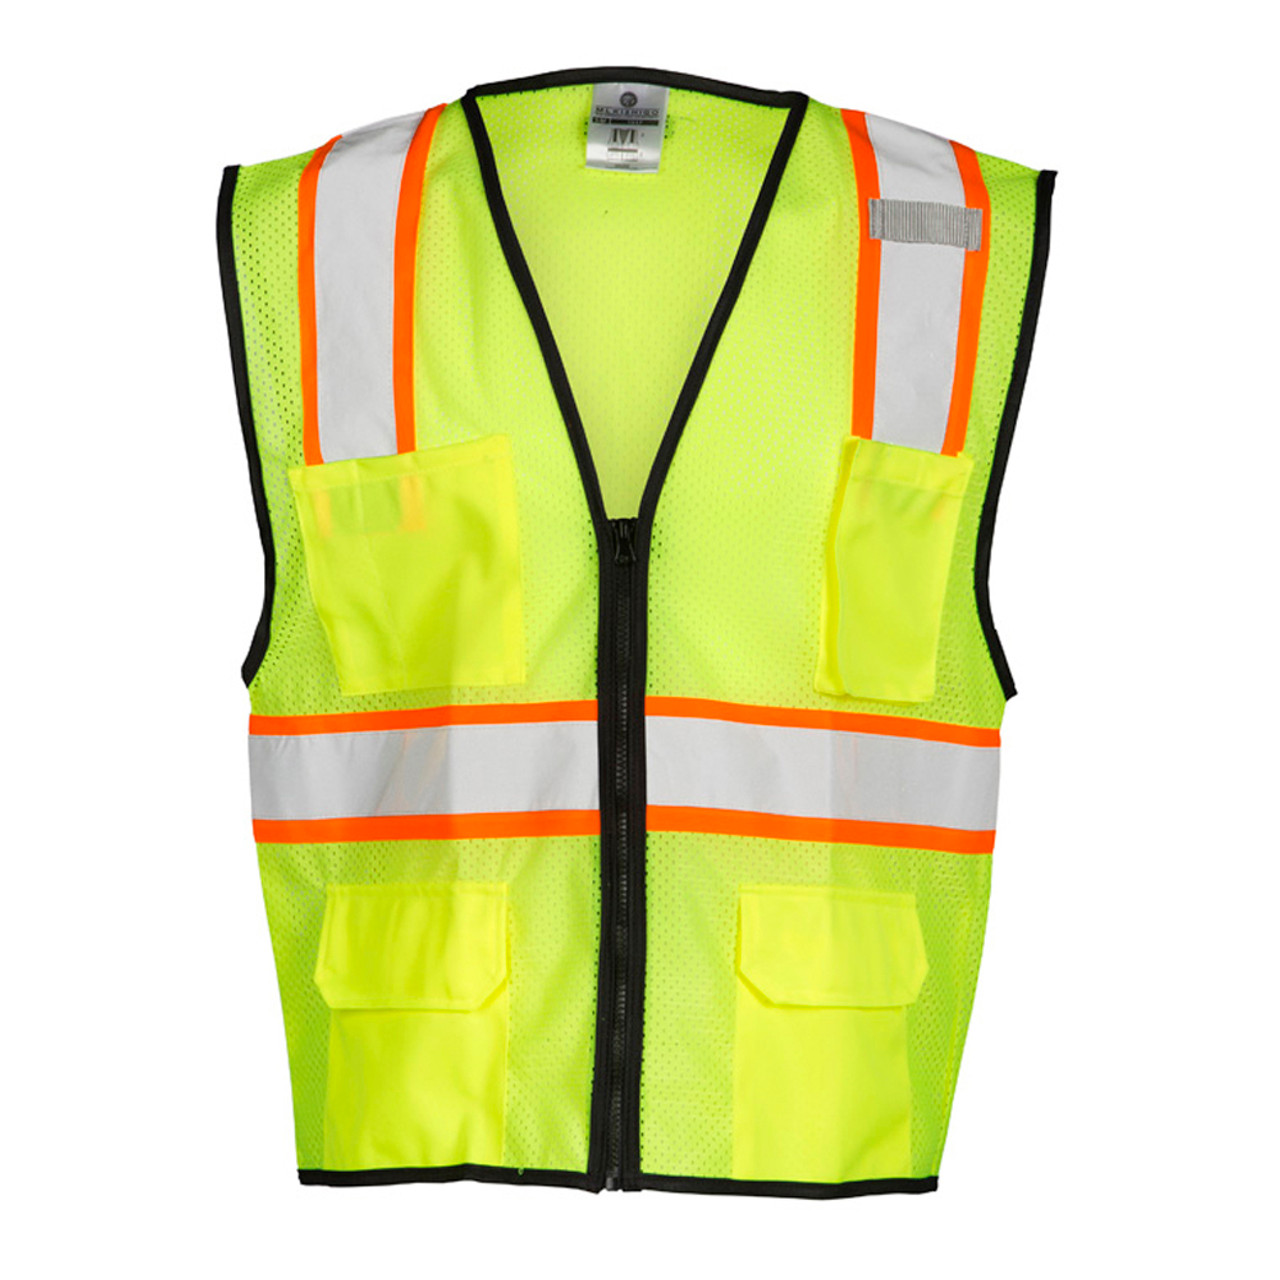 Workplace Safety Supplies Supply Black Mesh Vest High Visibility Pvc Reflective Tape Zipper Front